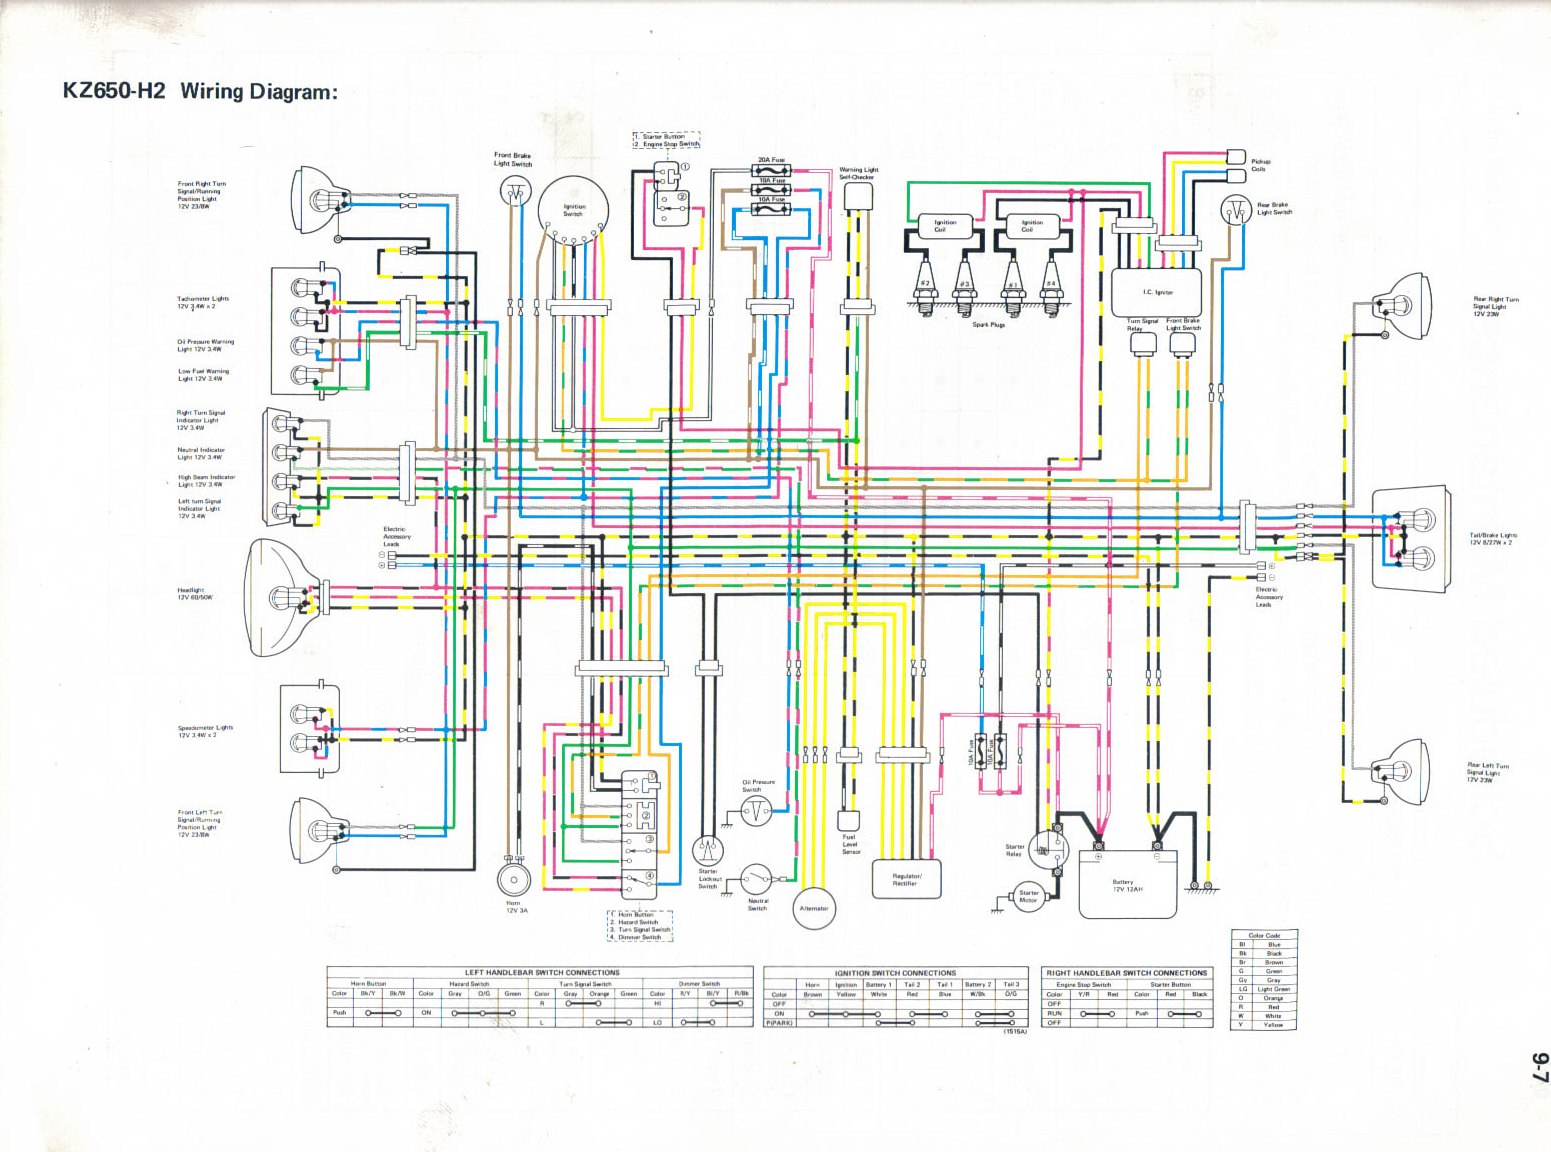 KZ650 H2 kz650 info wiring diagrams 1980 Kawasaki KZ750 Wiring-Diagram at webbmarketing.co